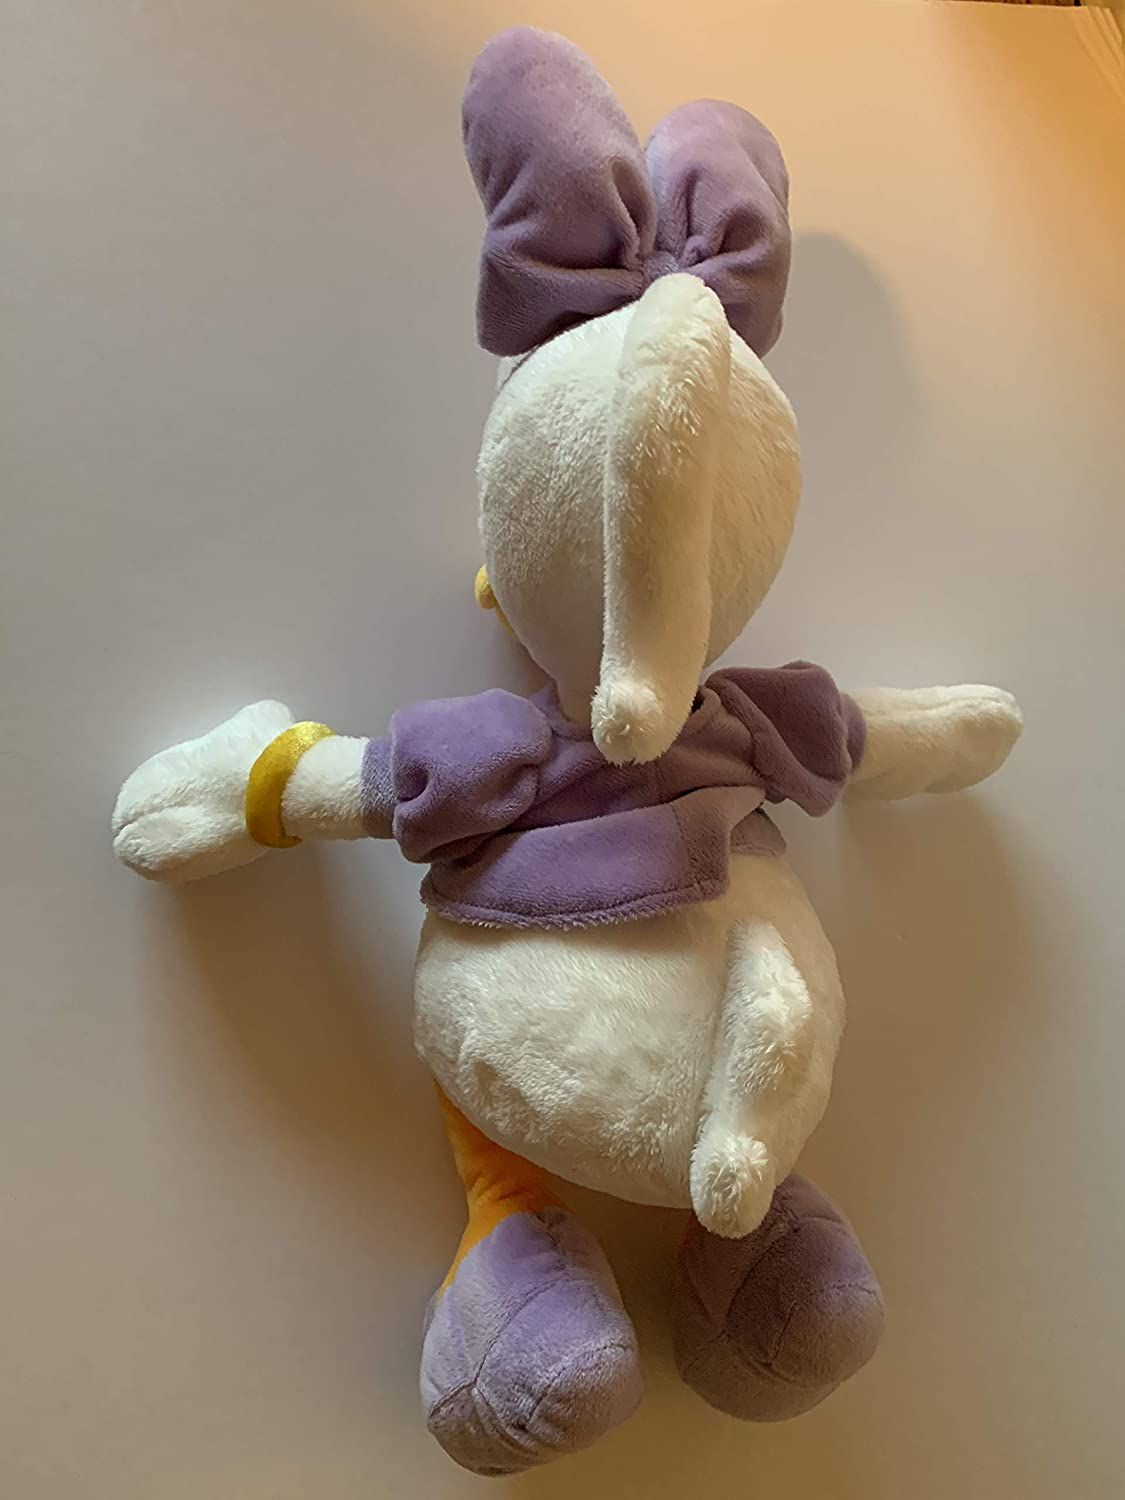 washable weighted buddy 3 lbs Donald Duck or Daisy Duck sensory toy Weighted stuffed animal